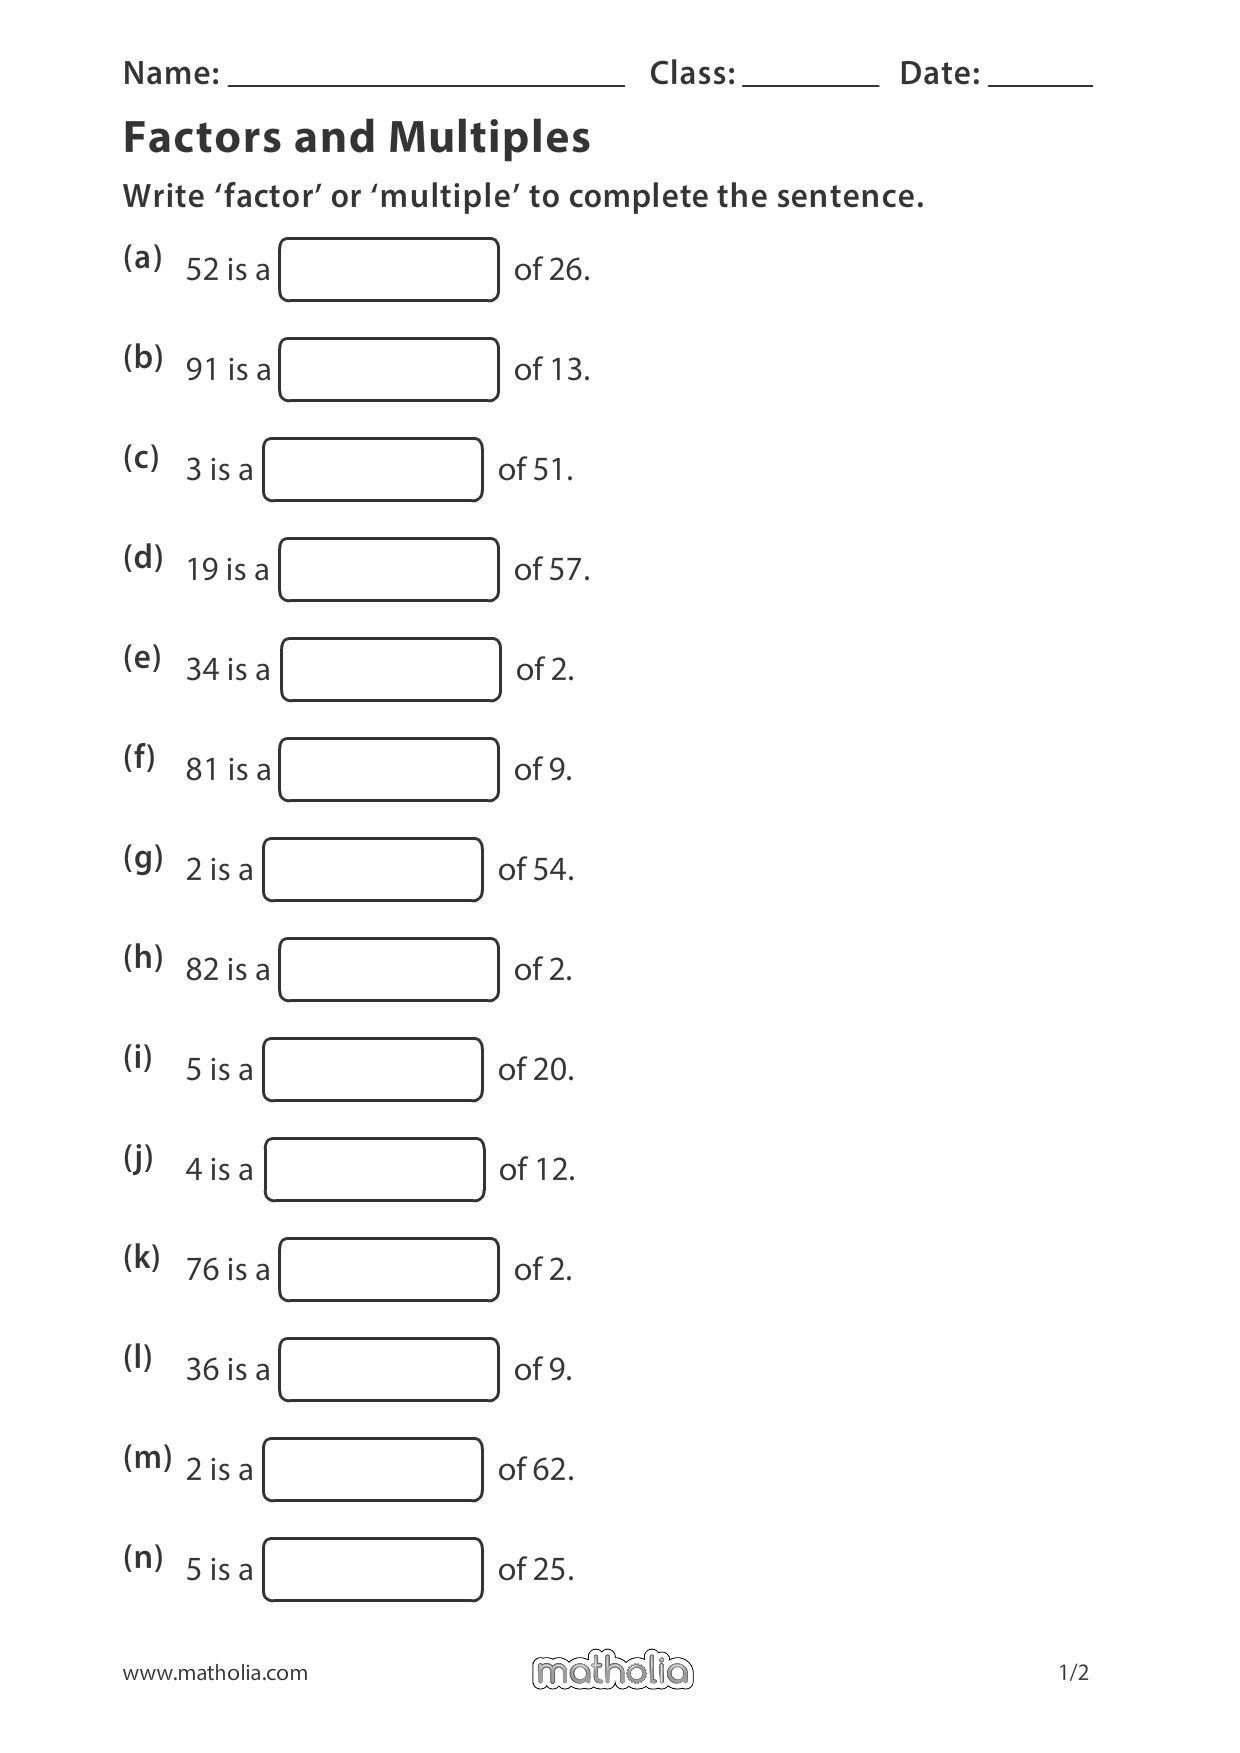 Factors And Multiples In